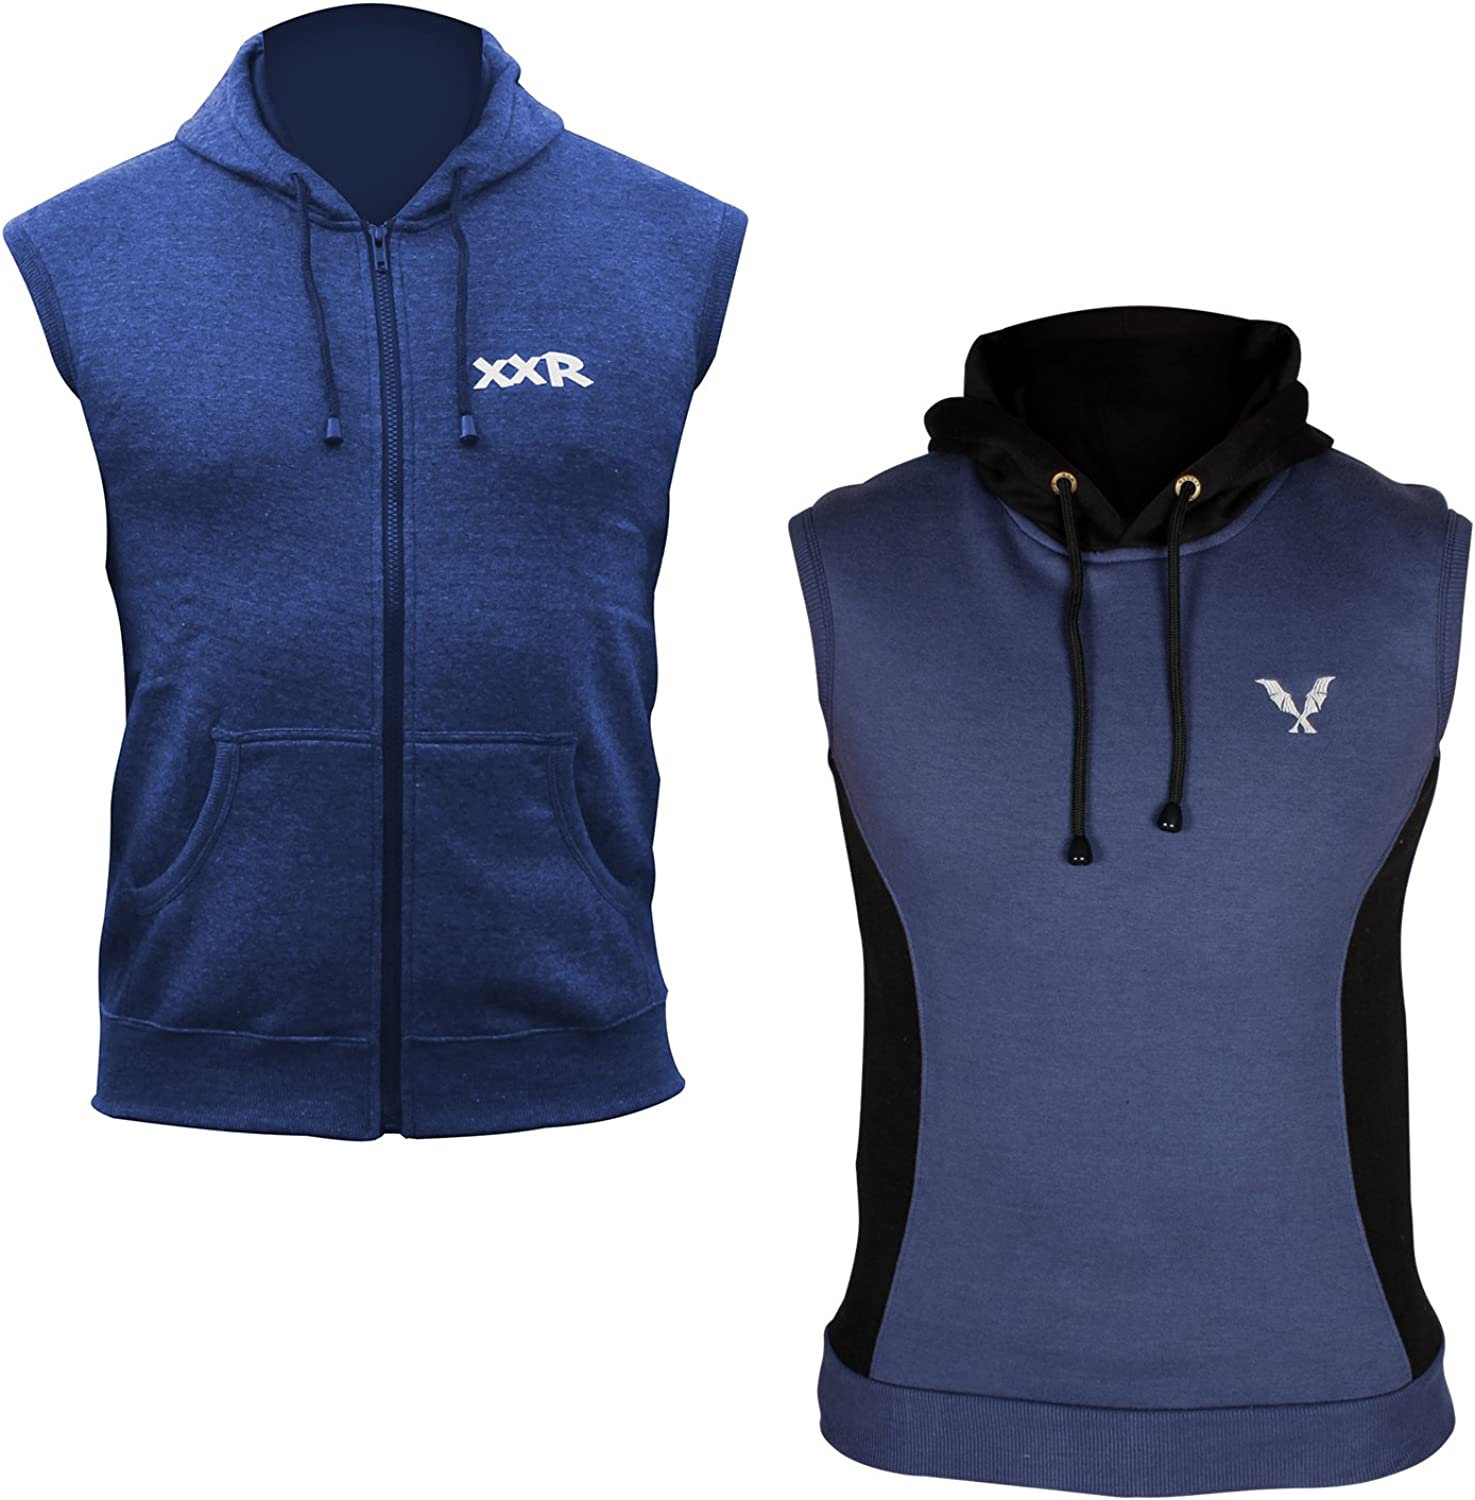 pair of XXR Sleeveless Hoodie Top Hoodies Hooded Sweat Shirt Gilet Gym Clothing Running Jogging Fitness Casual All Weather Cotton Fleece Sports Wear Boxing MMA Hoods Zip Up /& without zip